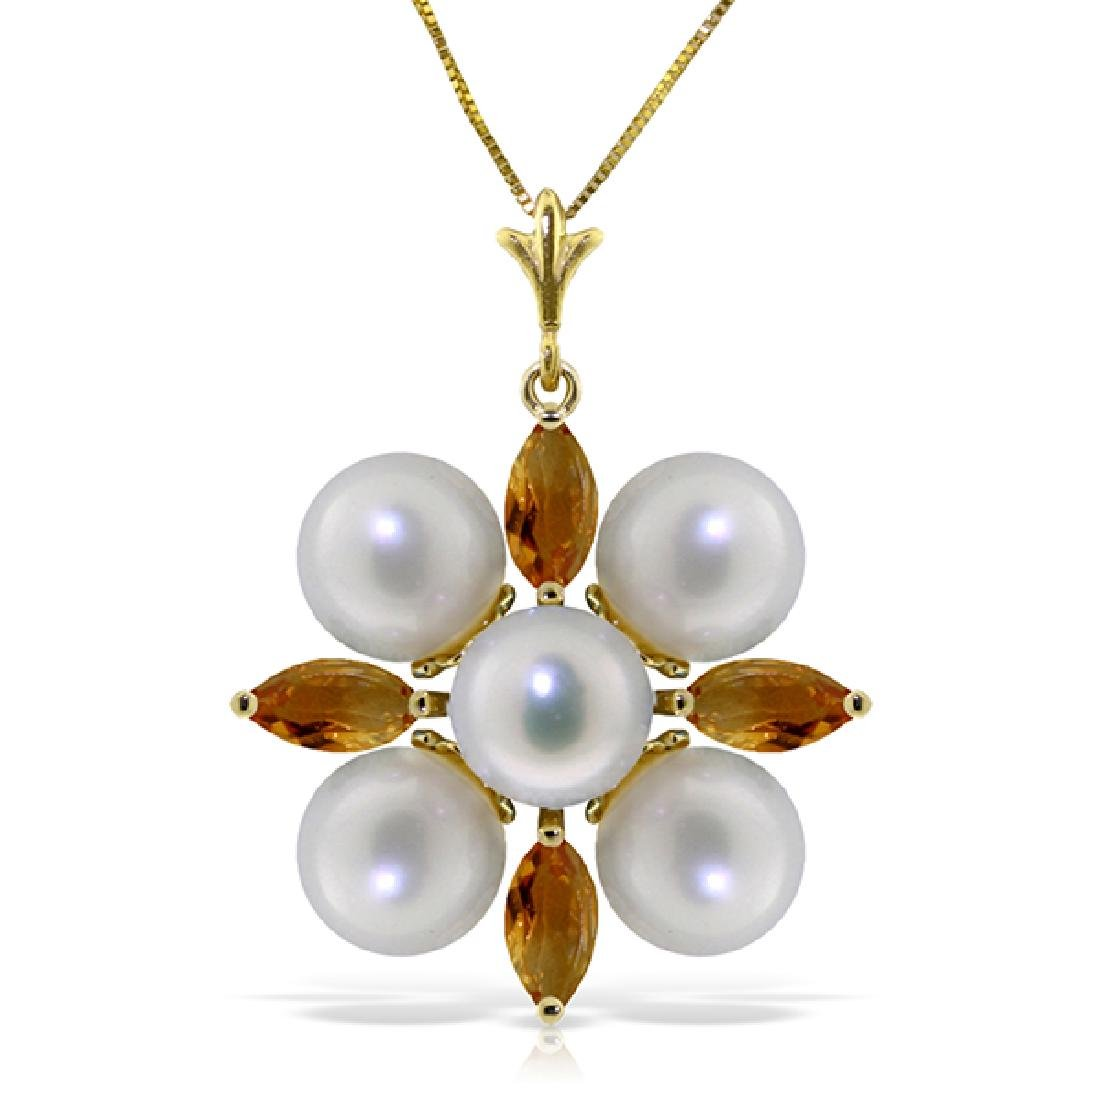 Genuine 6.3 ctw Citrine & Pearl Necklace Jewelry 14KT